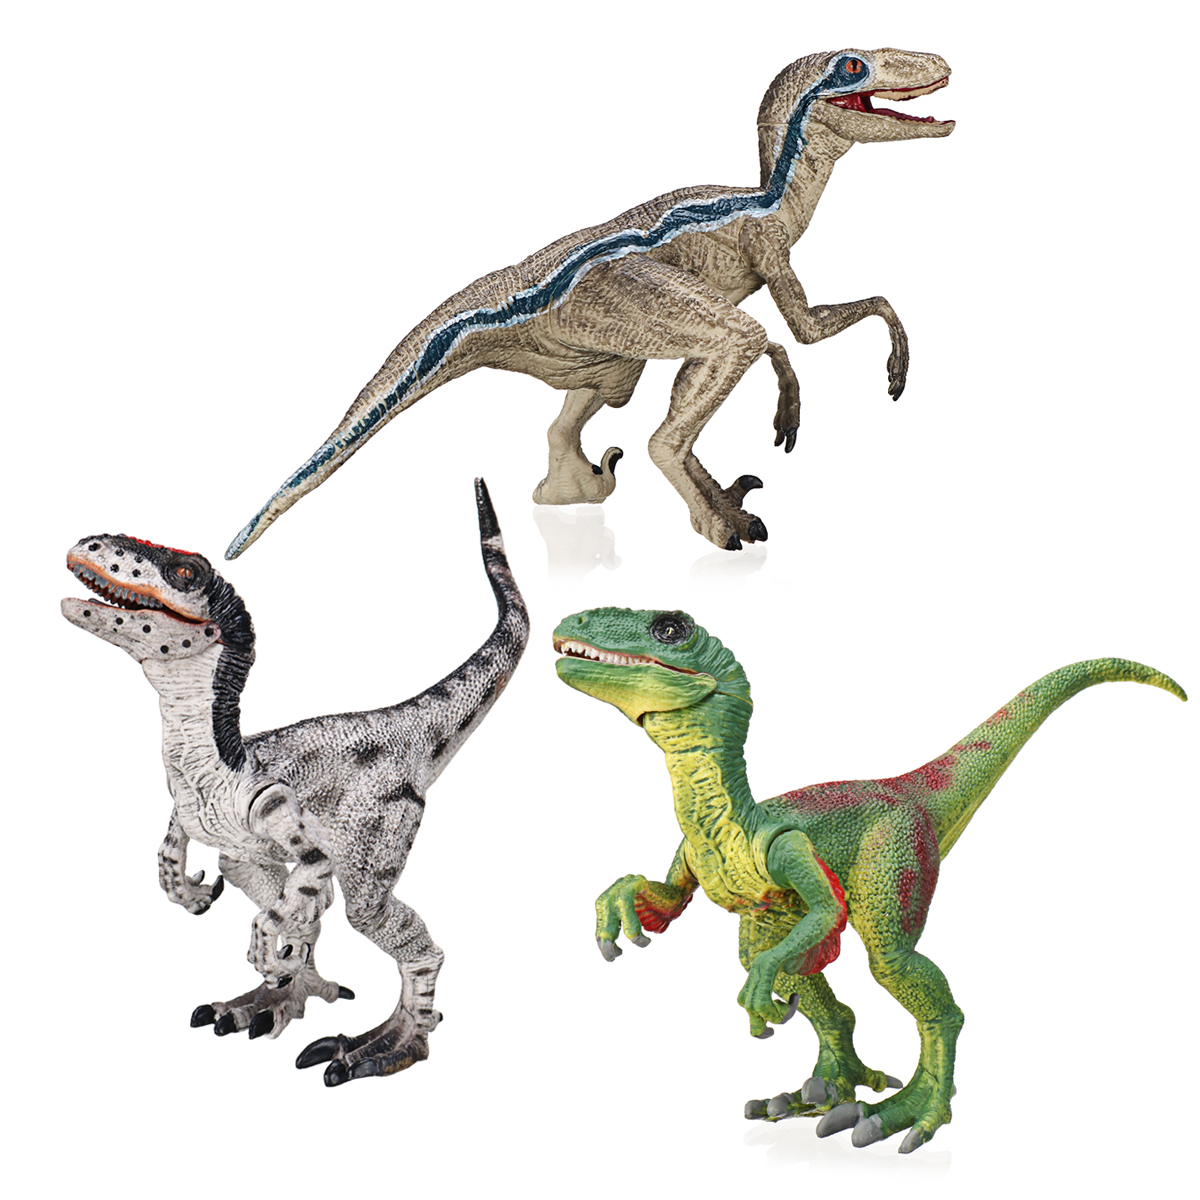 Velociraptor Dinosaur Toys Educational Model Figure 133 Grey Green For Kids